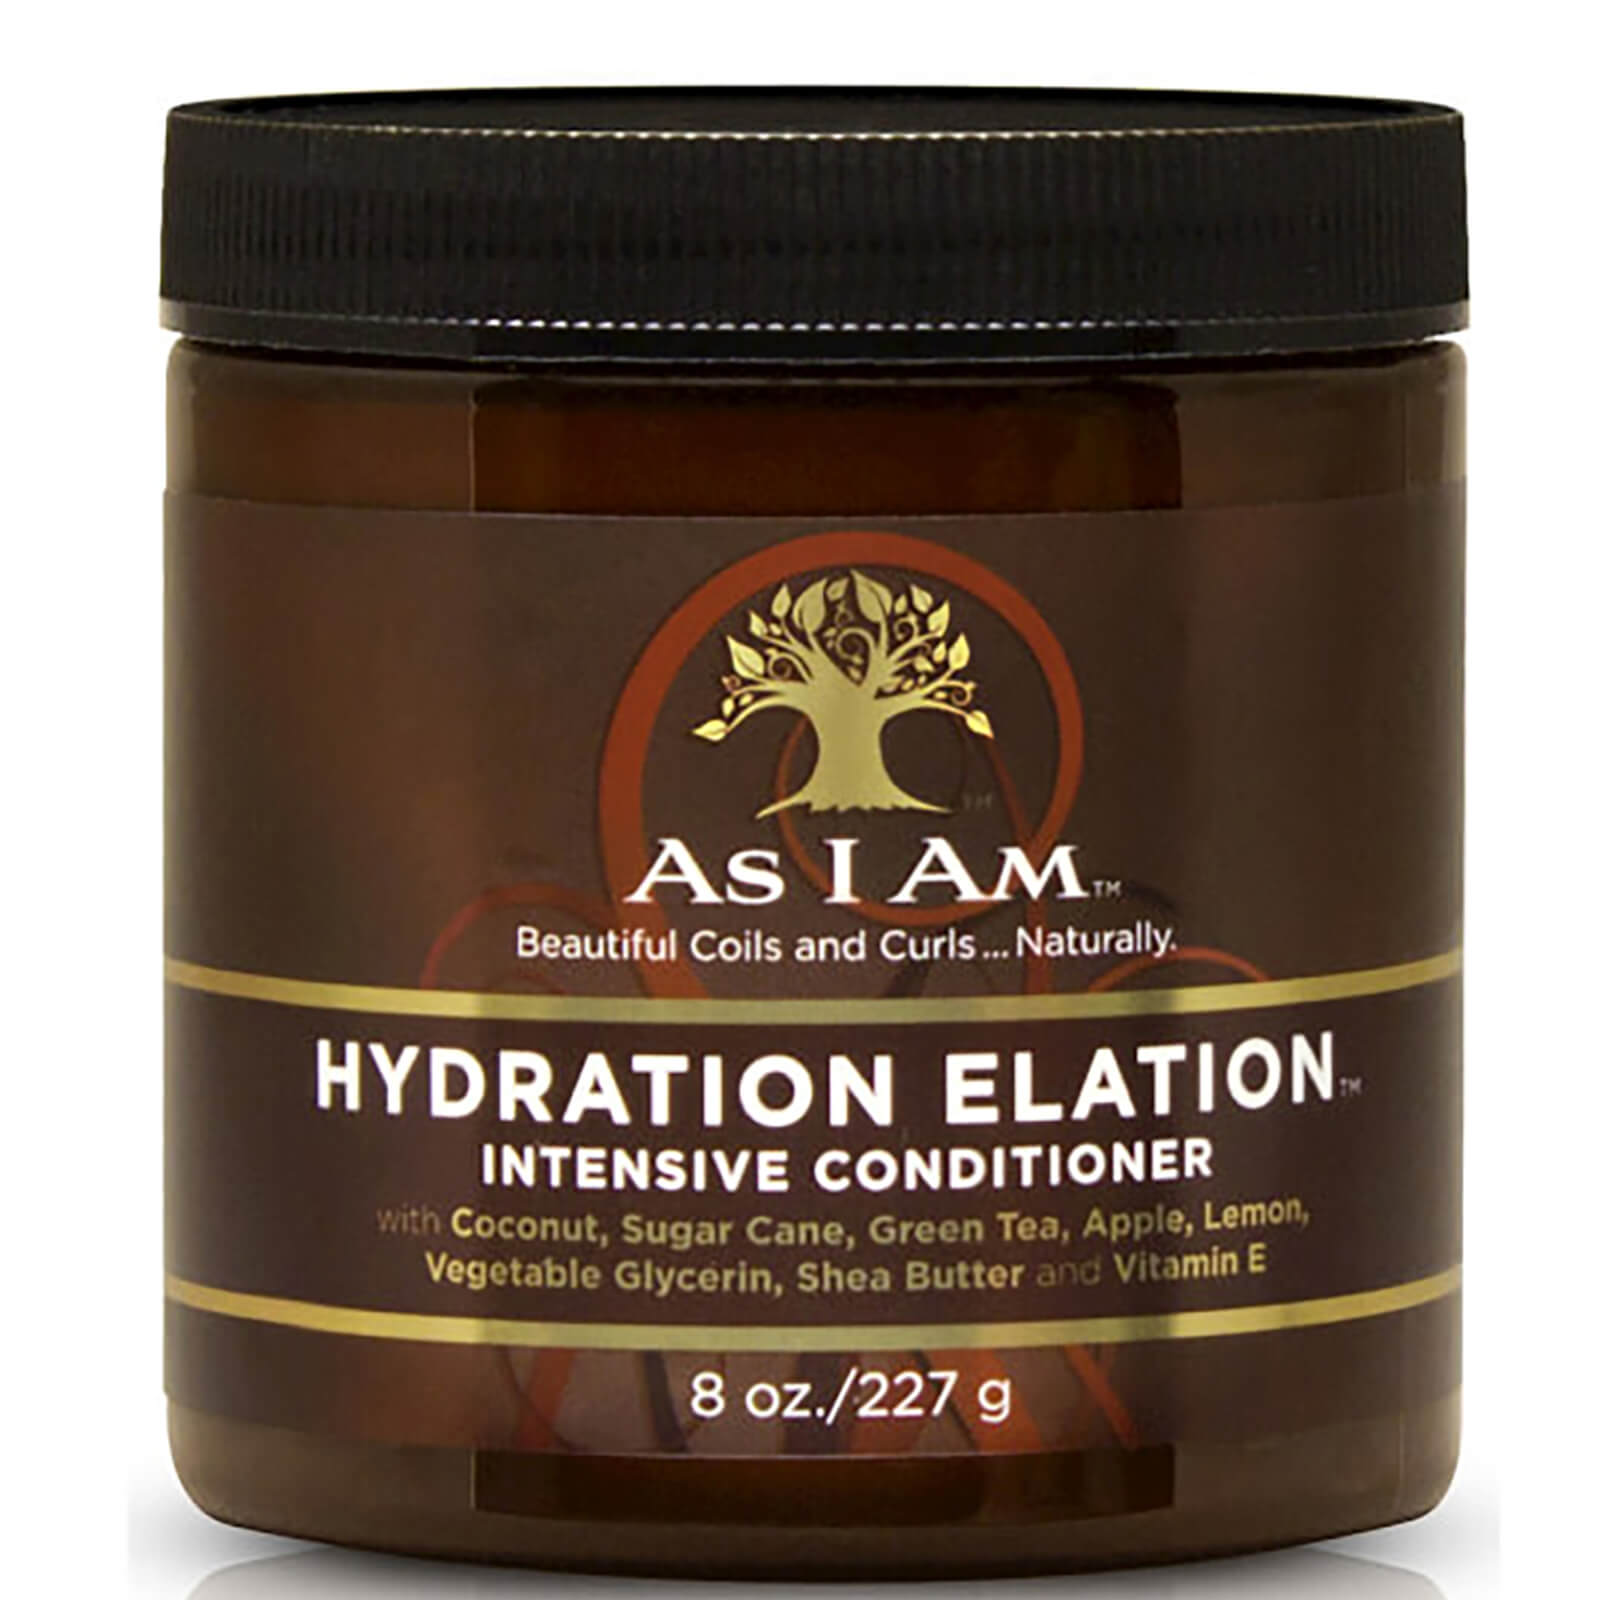 Acondicionador Hydration Elation Intensive de As I Am